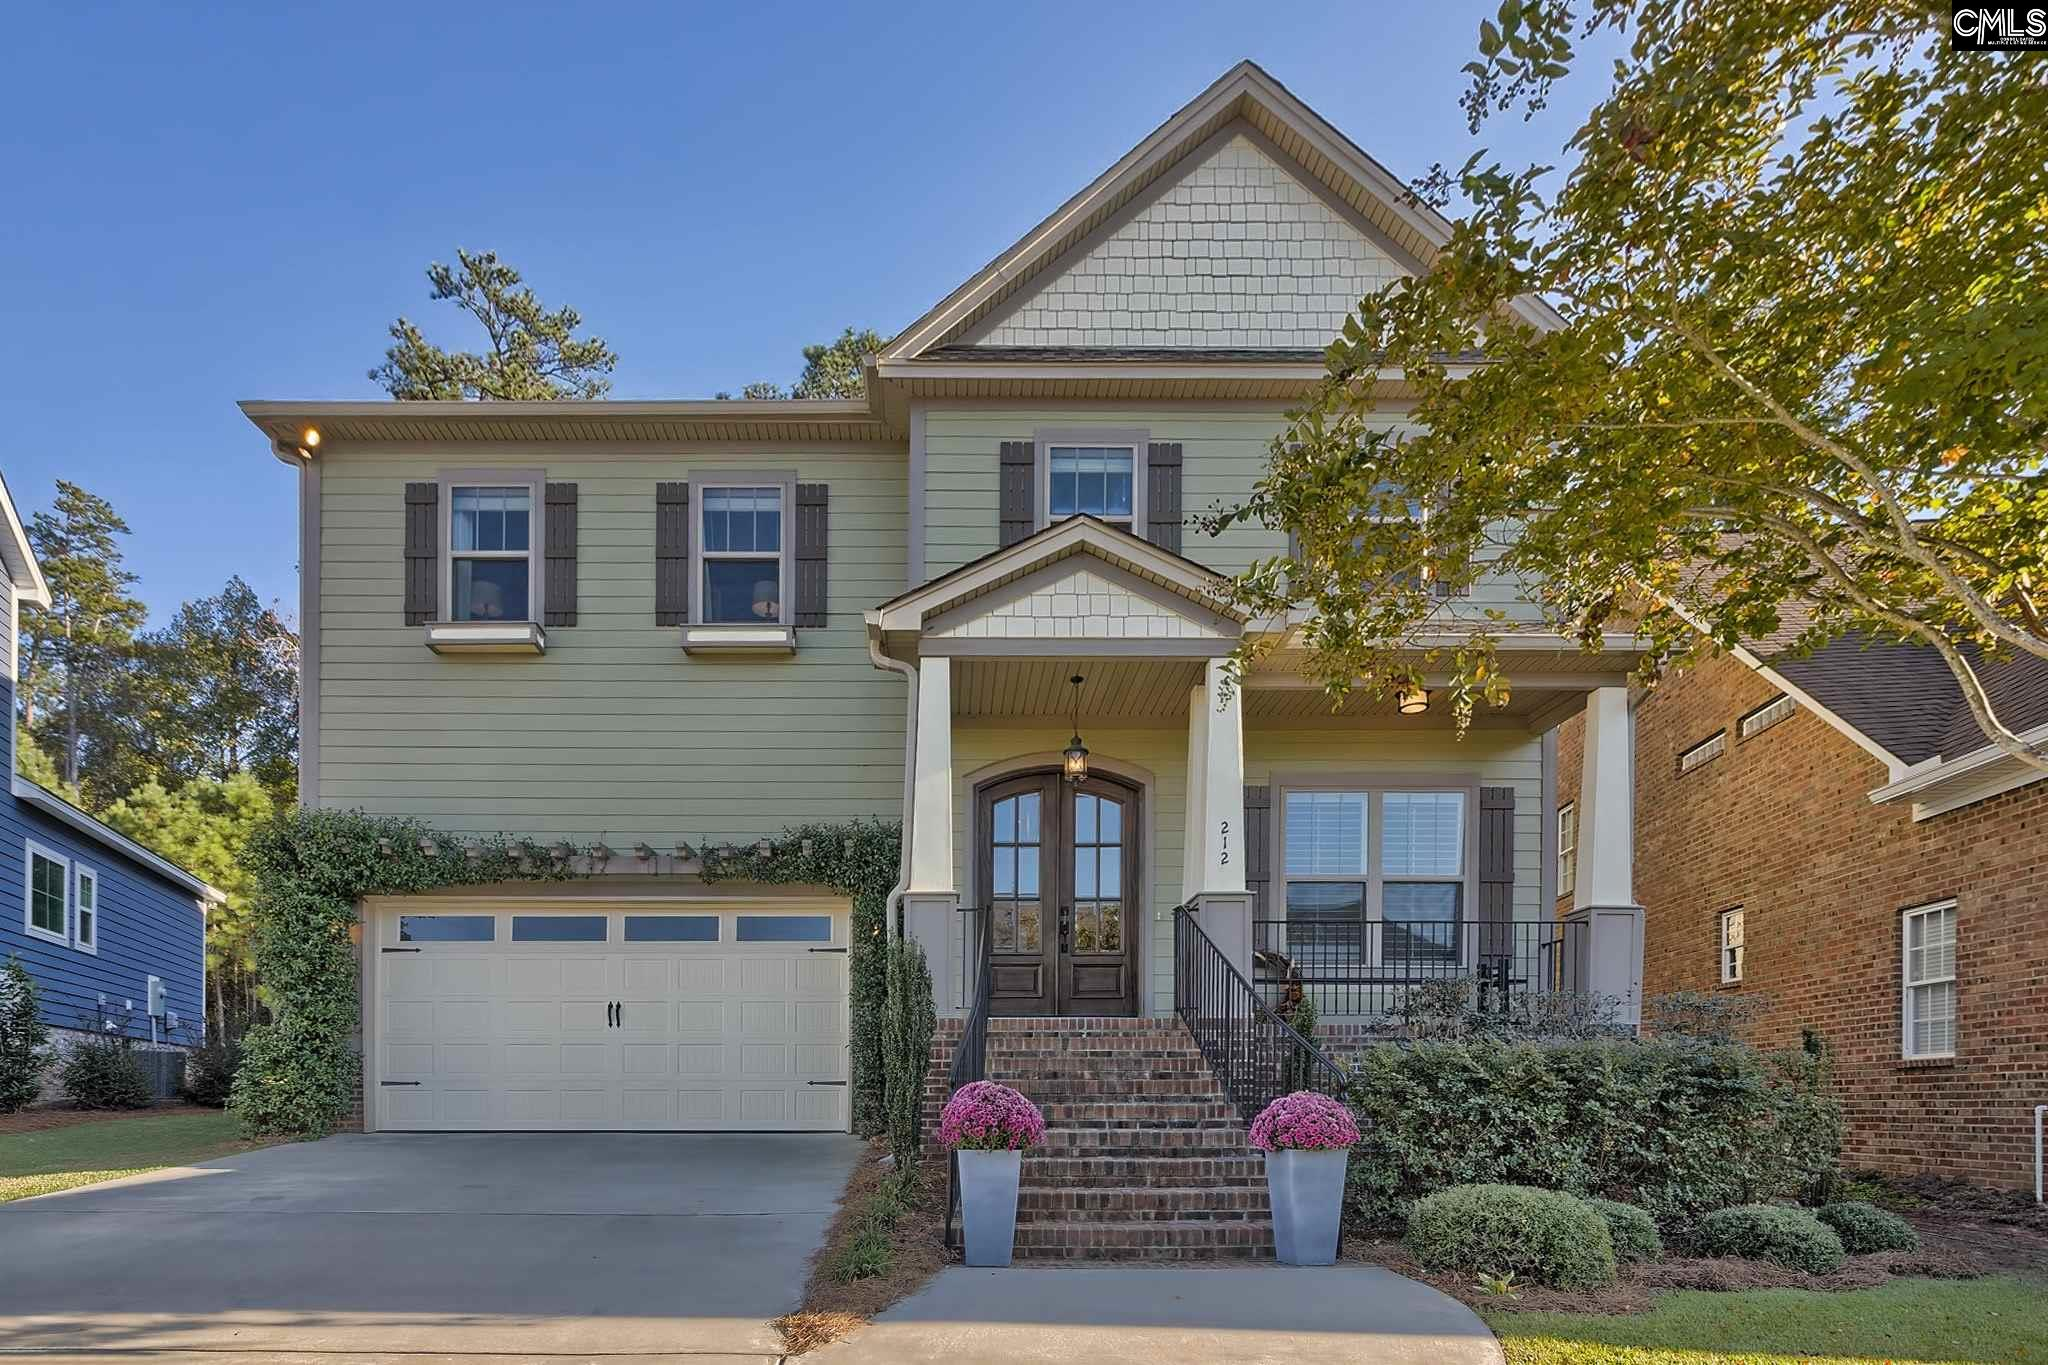 212 Harbor Vista Lexington, SC 29072